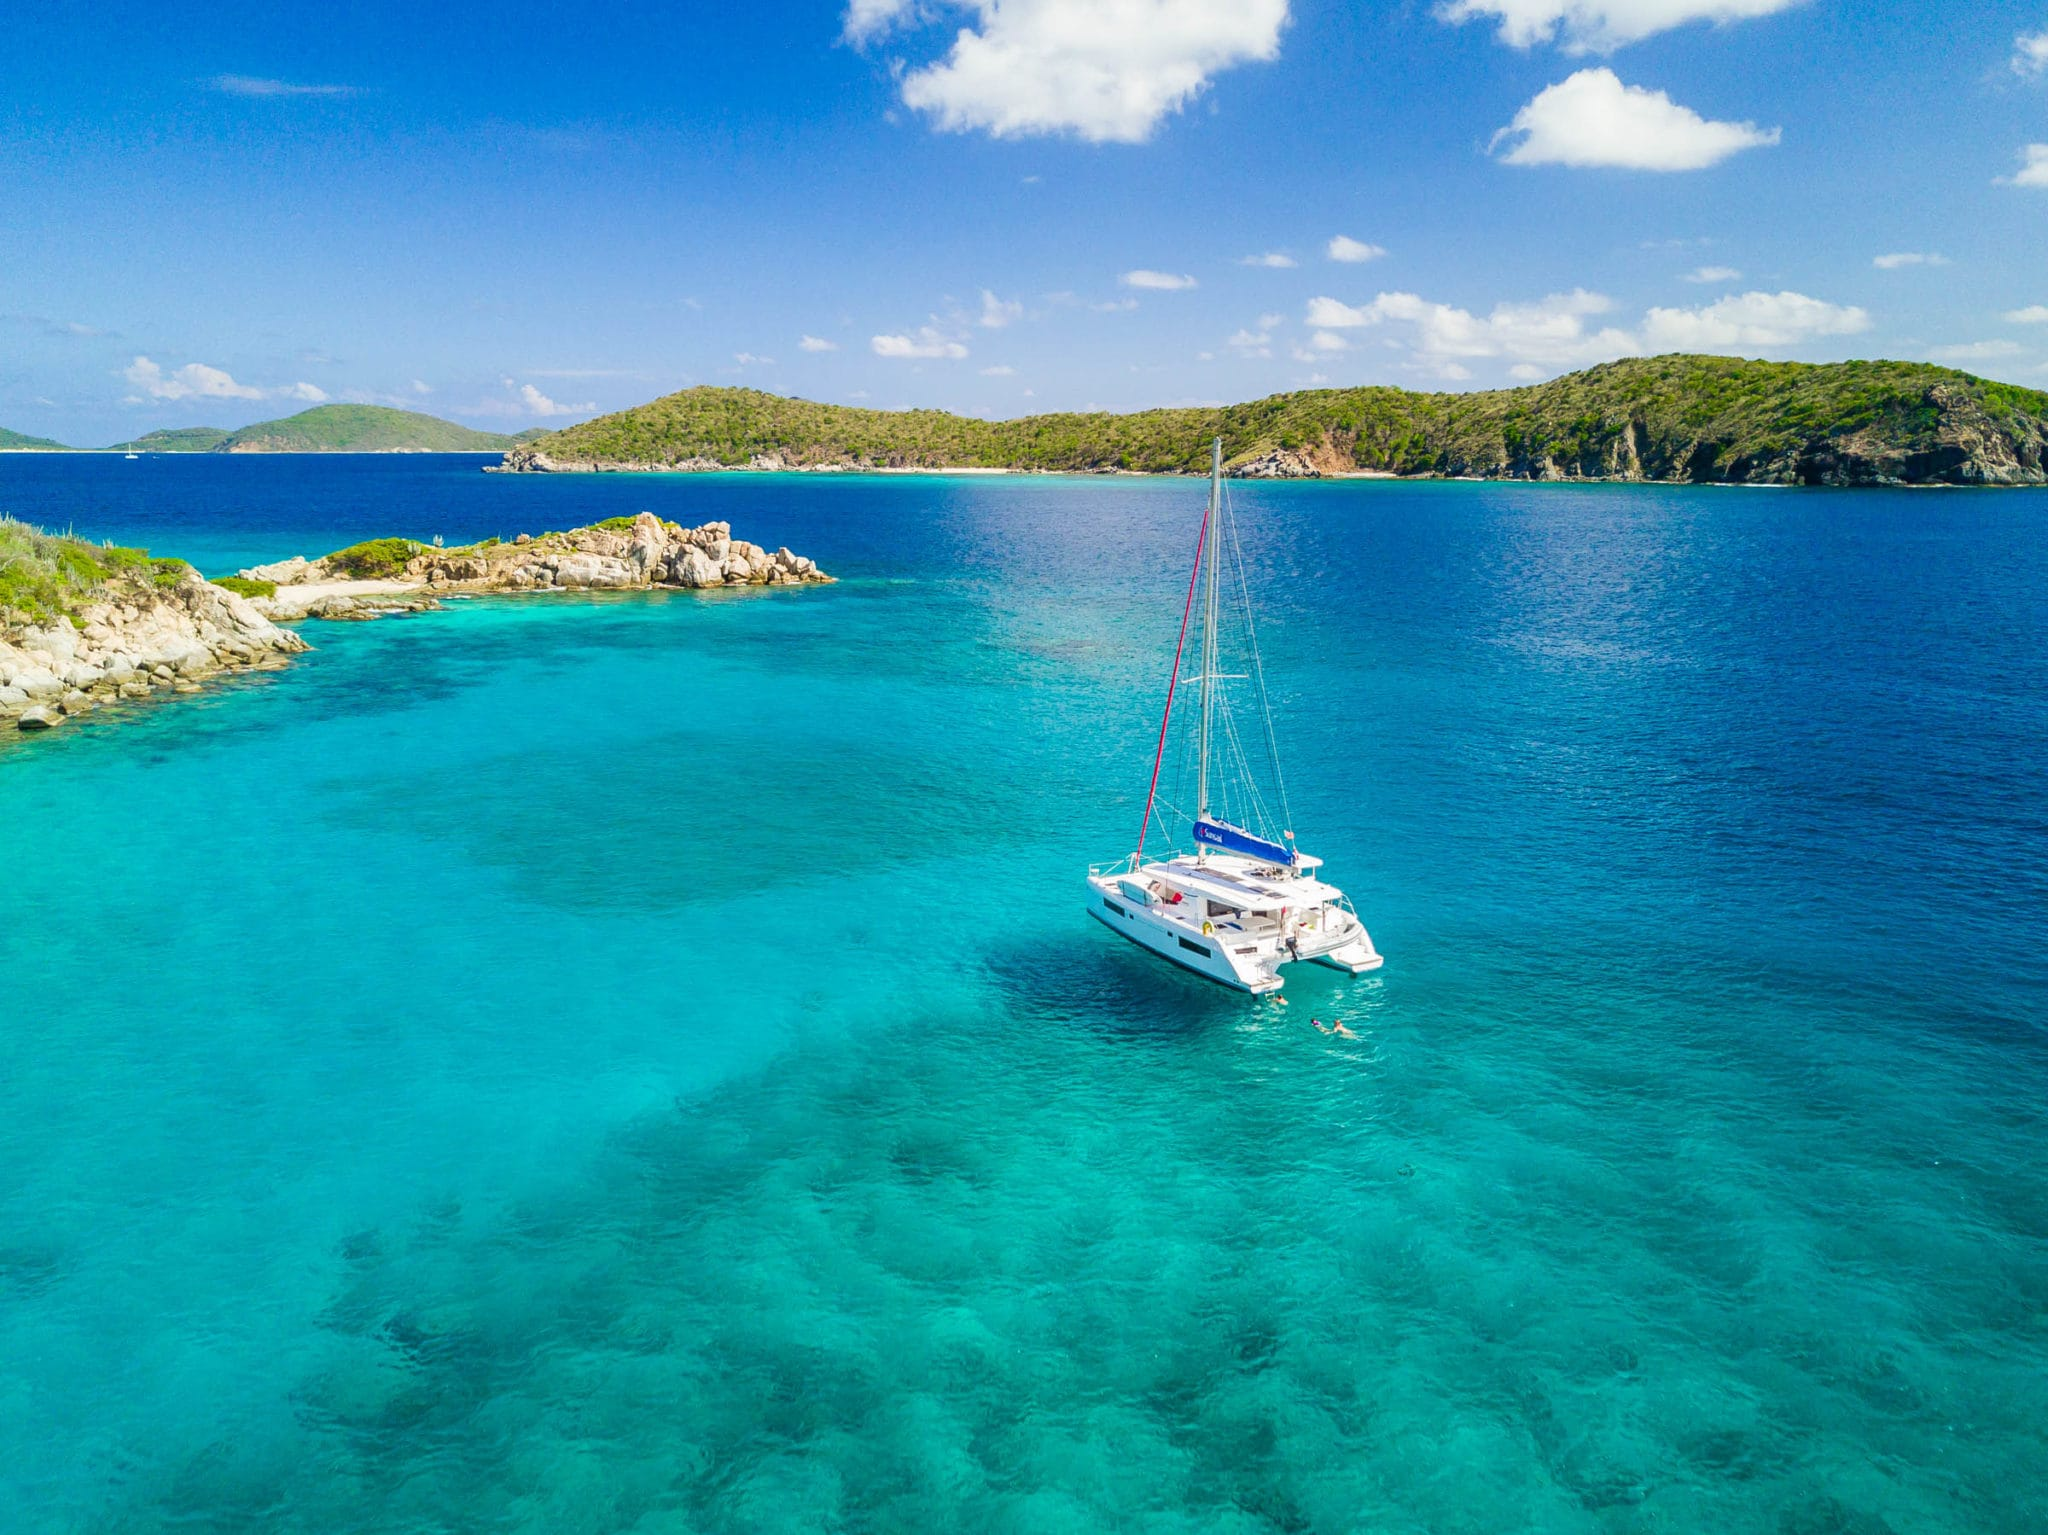 Barking up The Dog Islands of the BVI's: Photo of the Day